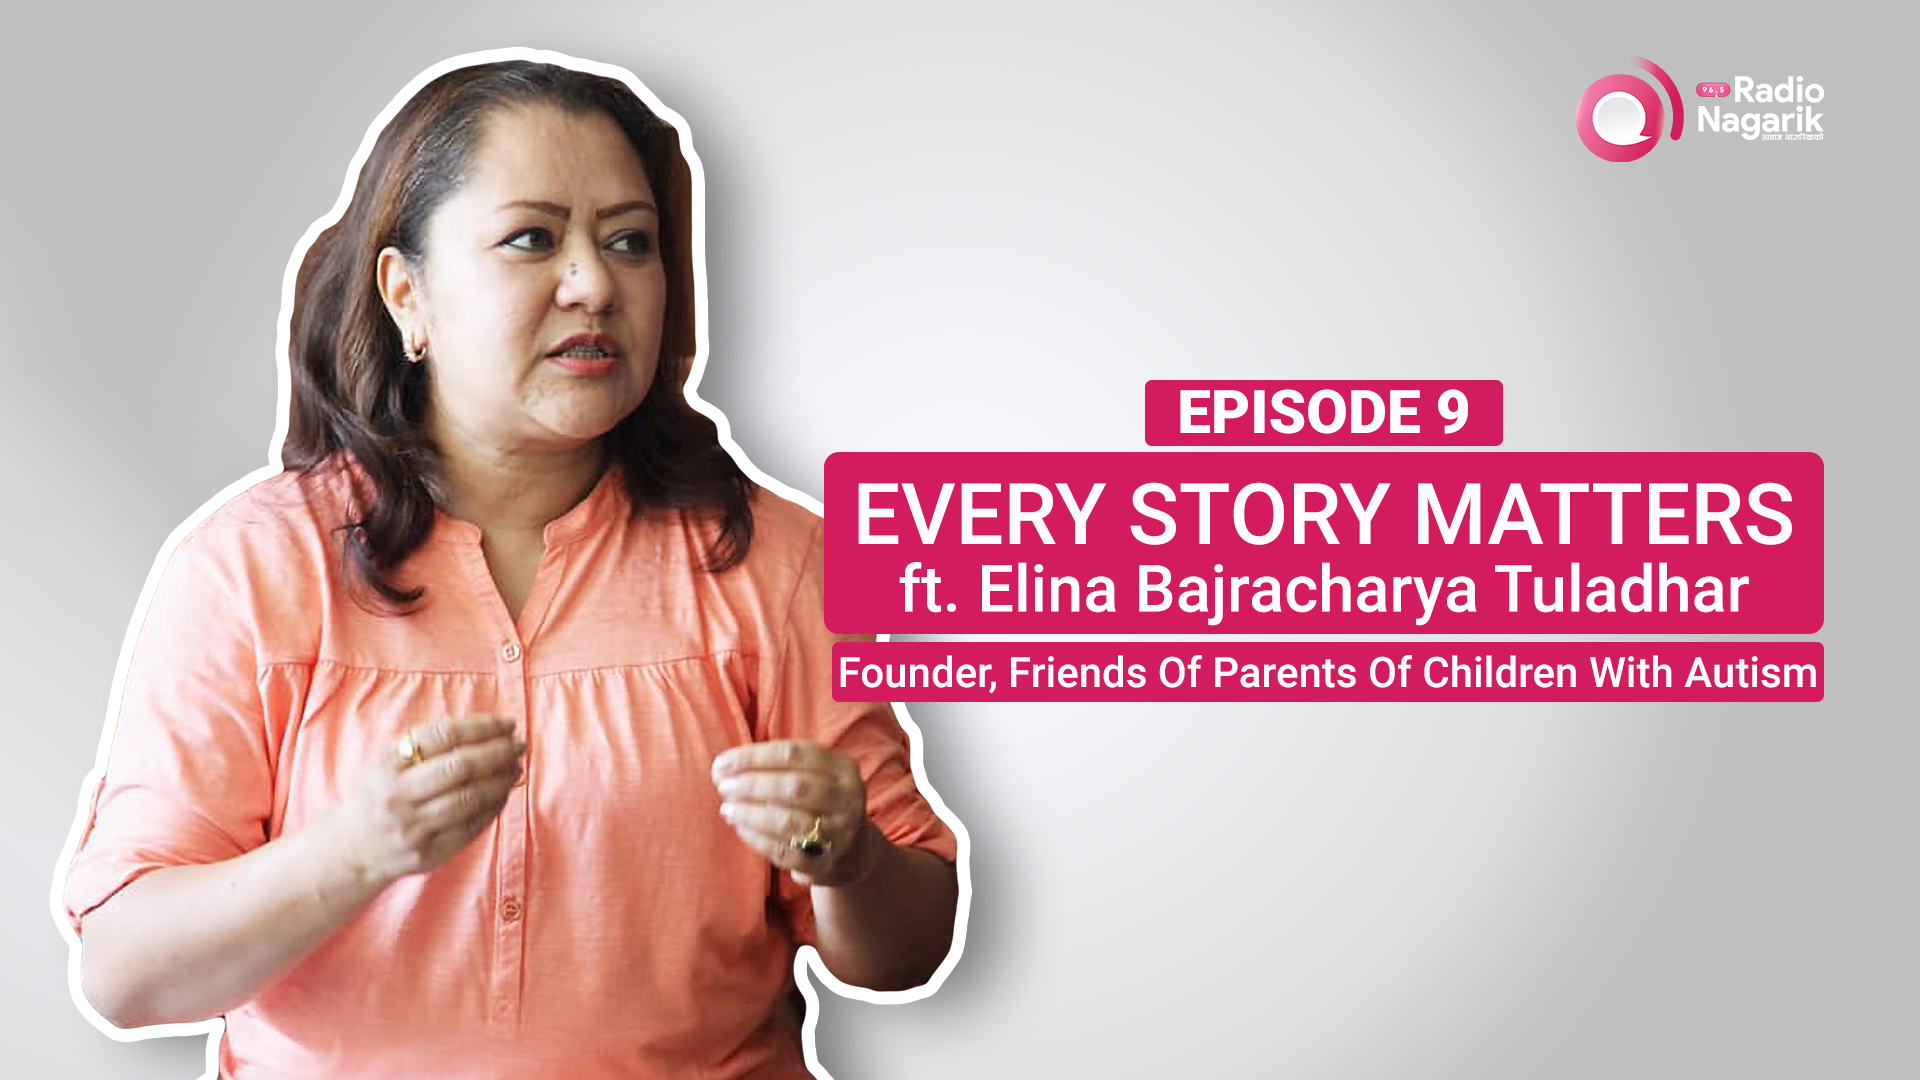 Elina Bajracharya - What is it like to be the Mother of an Autistic child? / NEPALI PODCAST